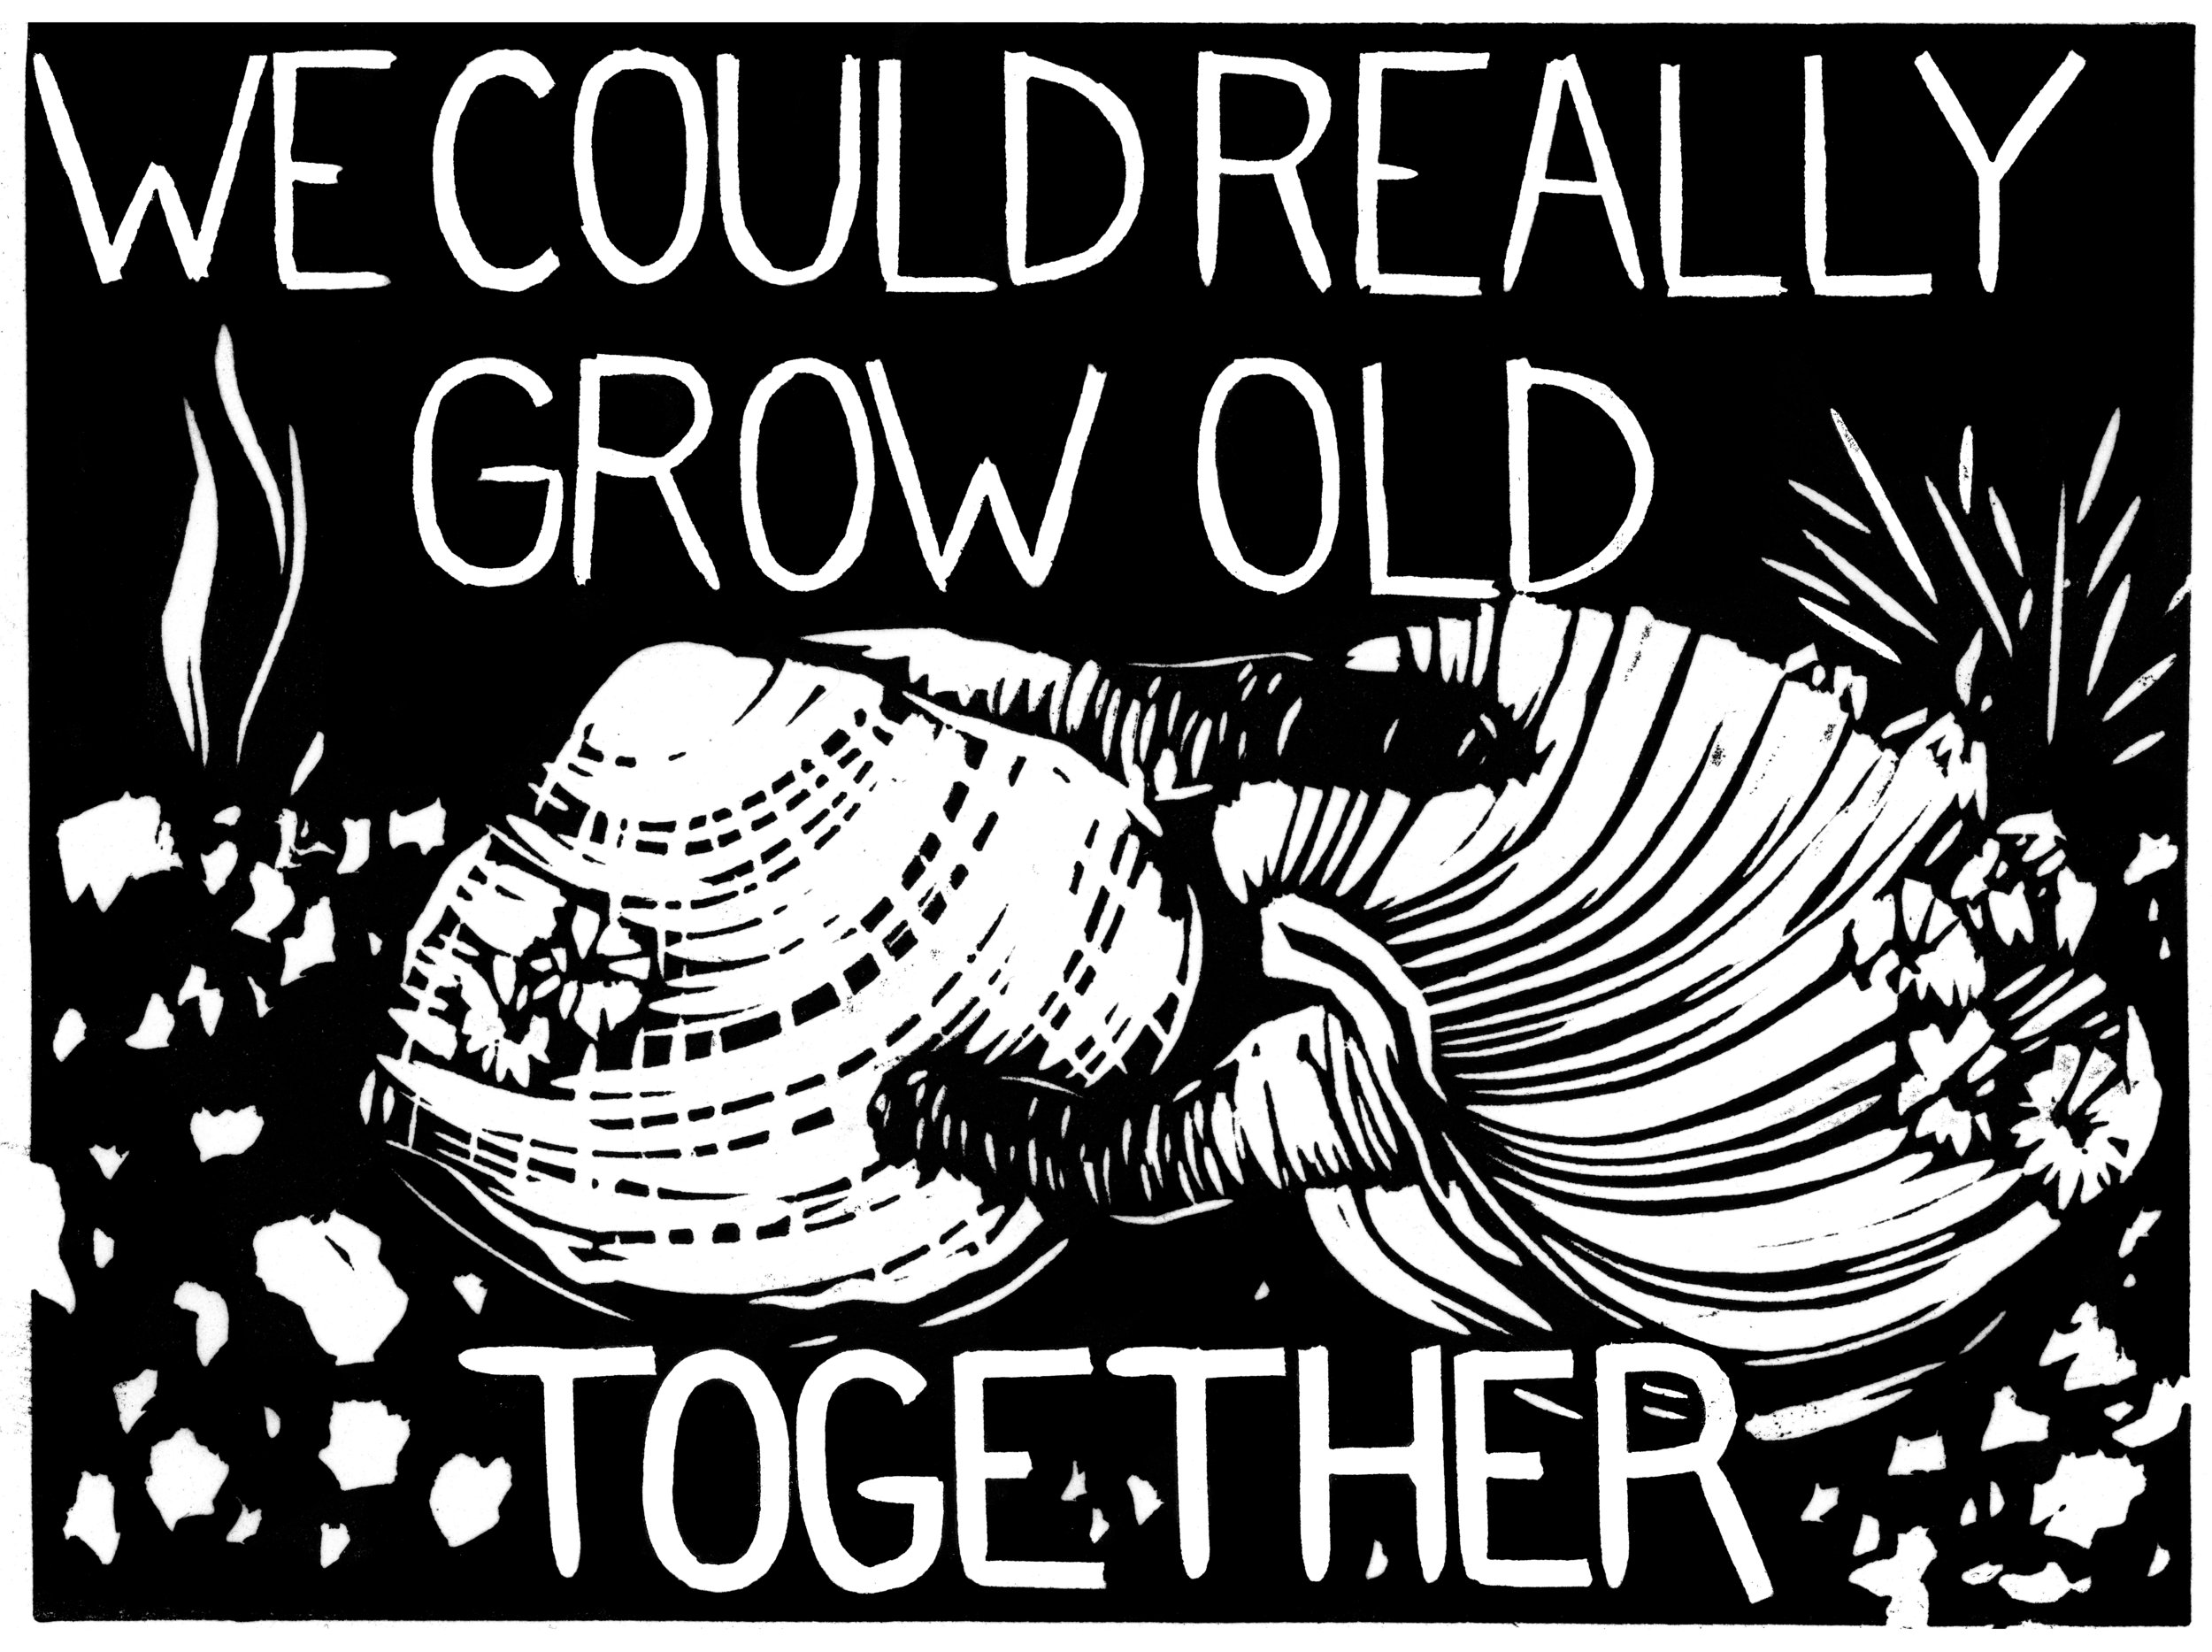 Grow Really Old Together edit.jpg